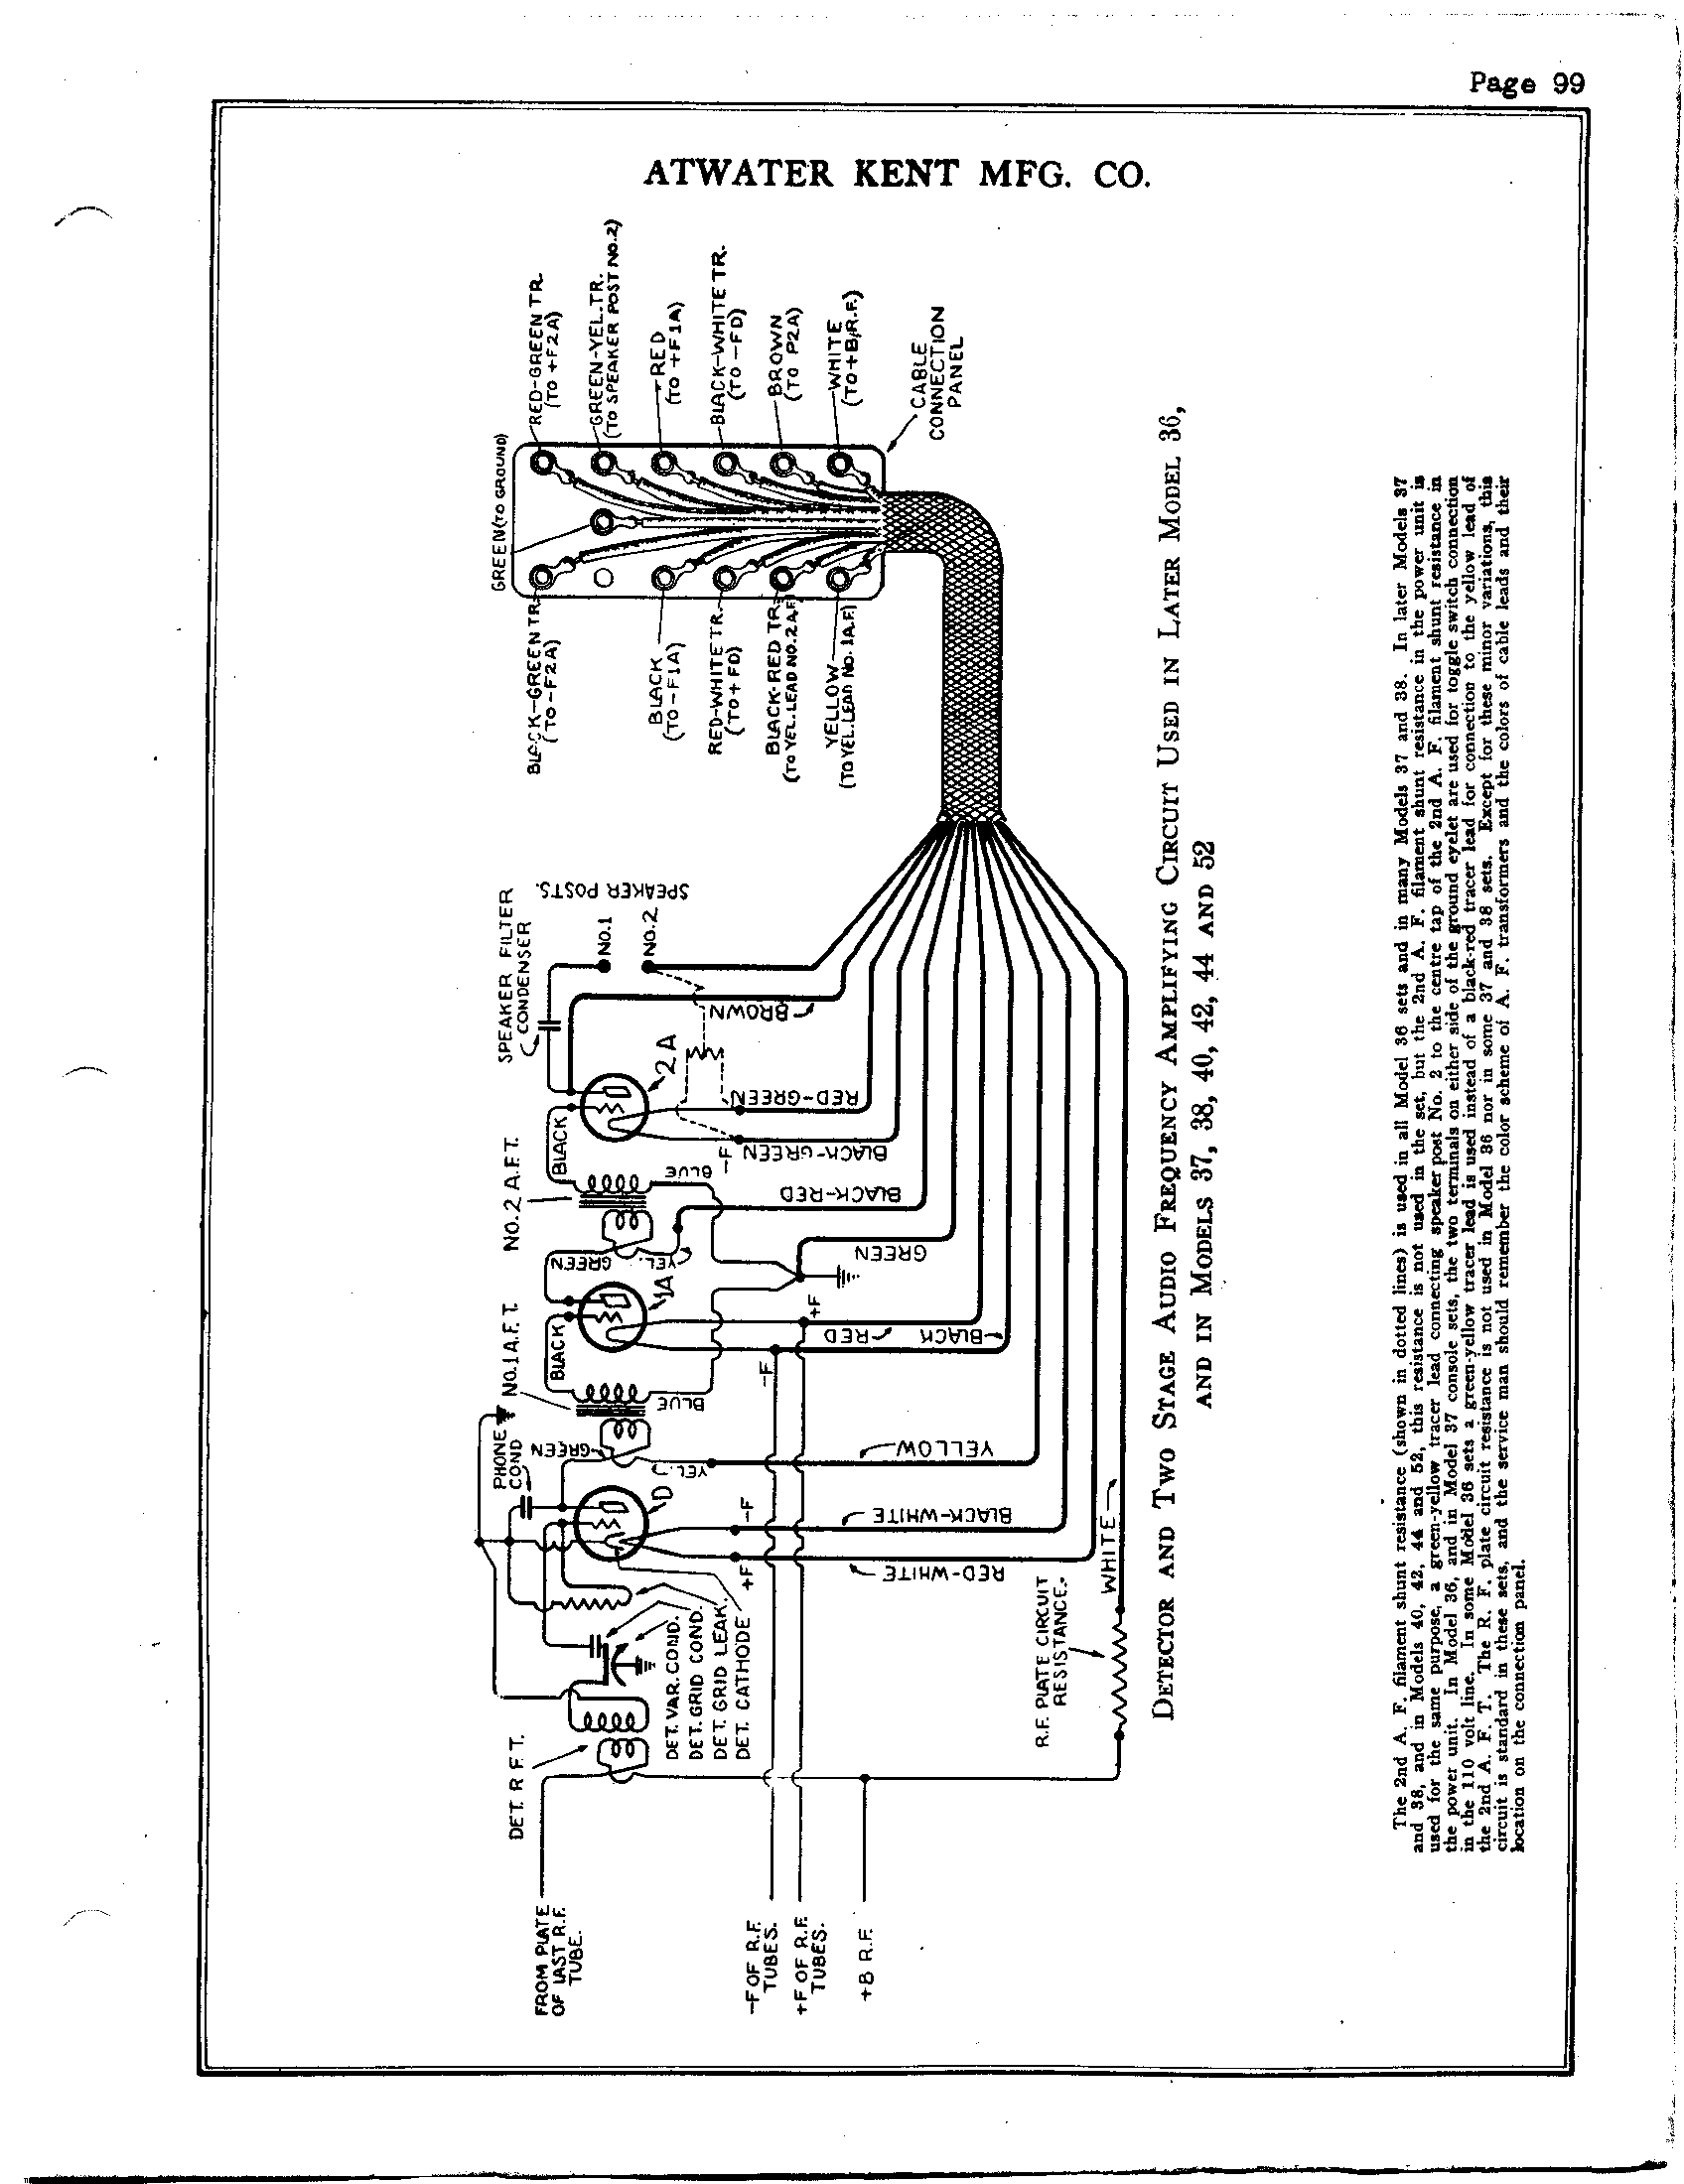 wiring diagram for guitar atwater kent 40 antique electronic supply  atwater kent 40 antique electronic supply